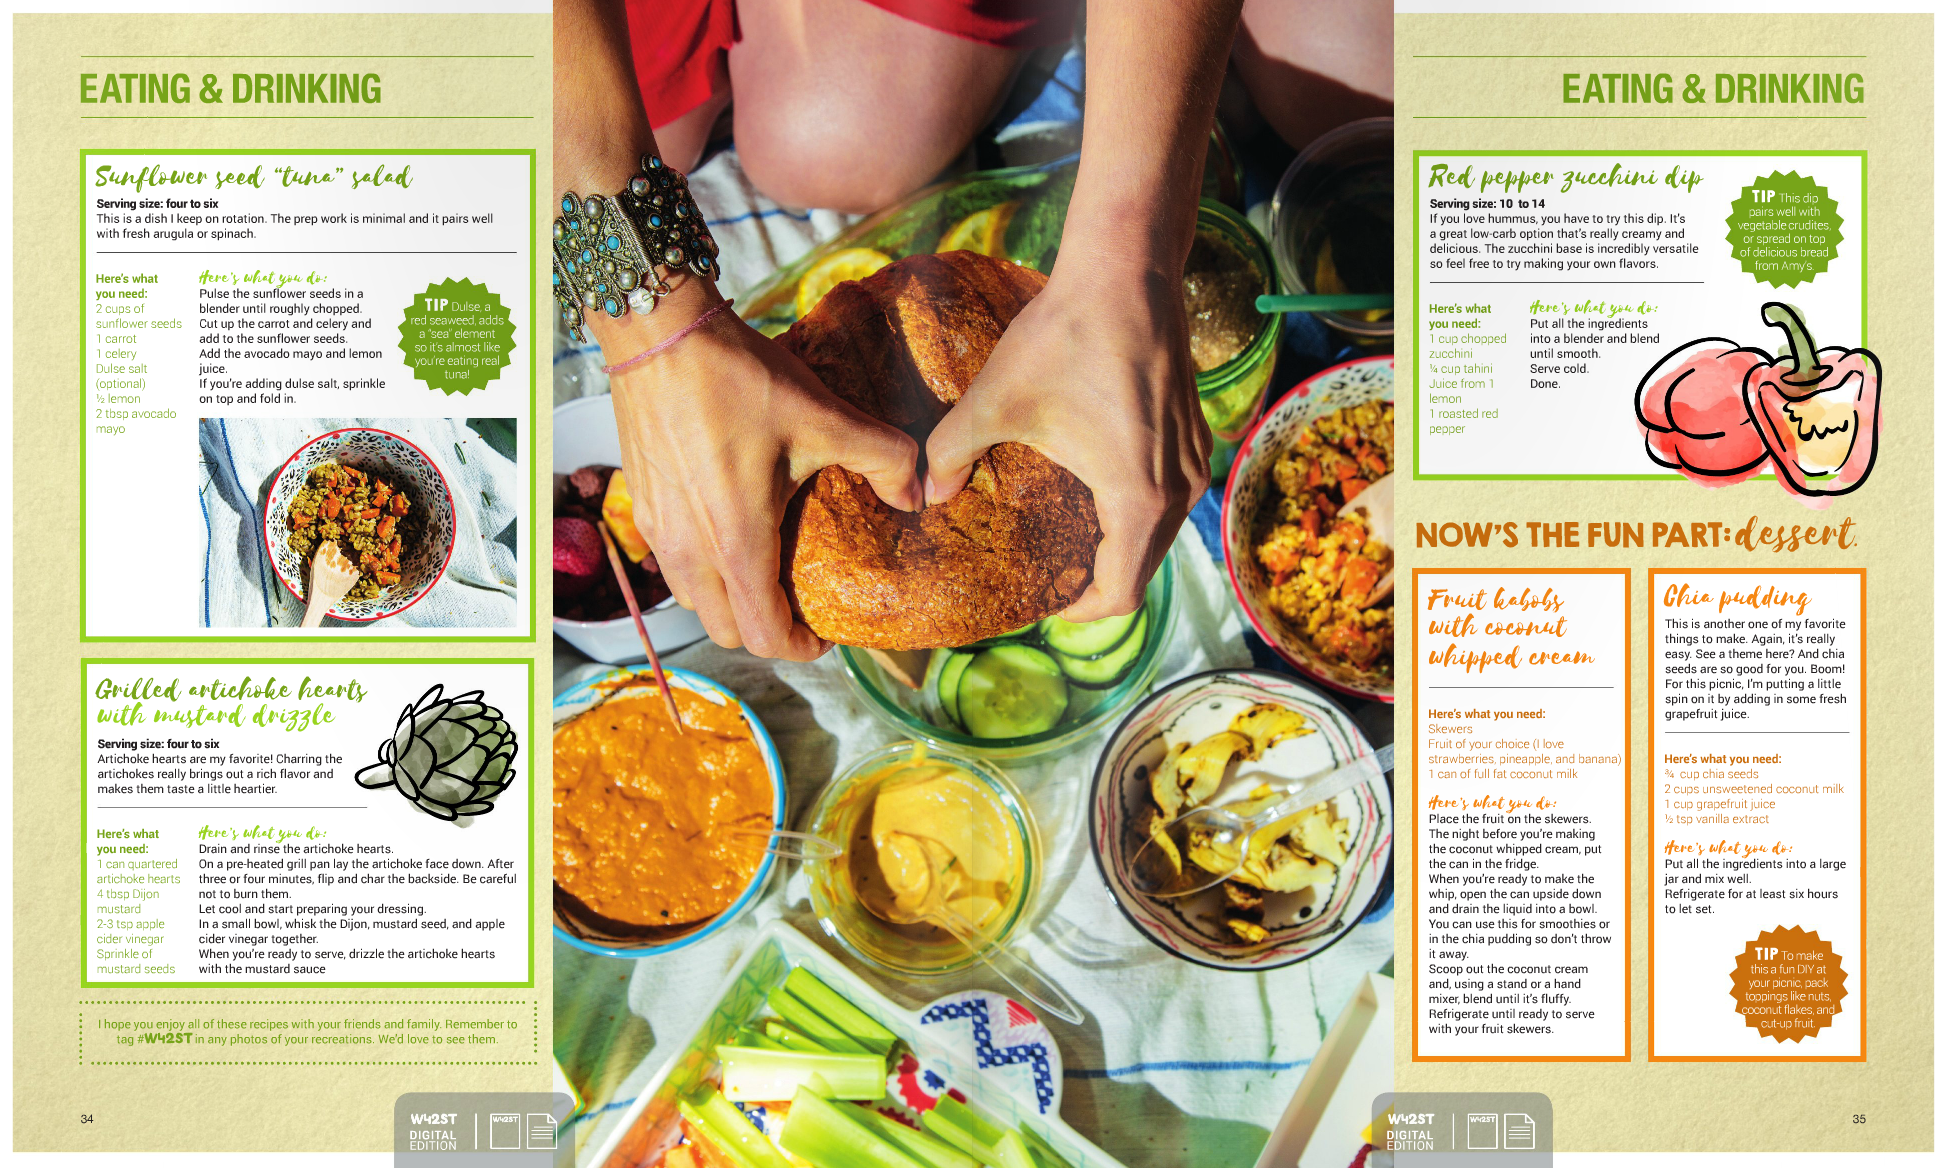 The food was as important as the subjects, the details are key in the type of editorial